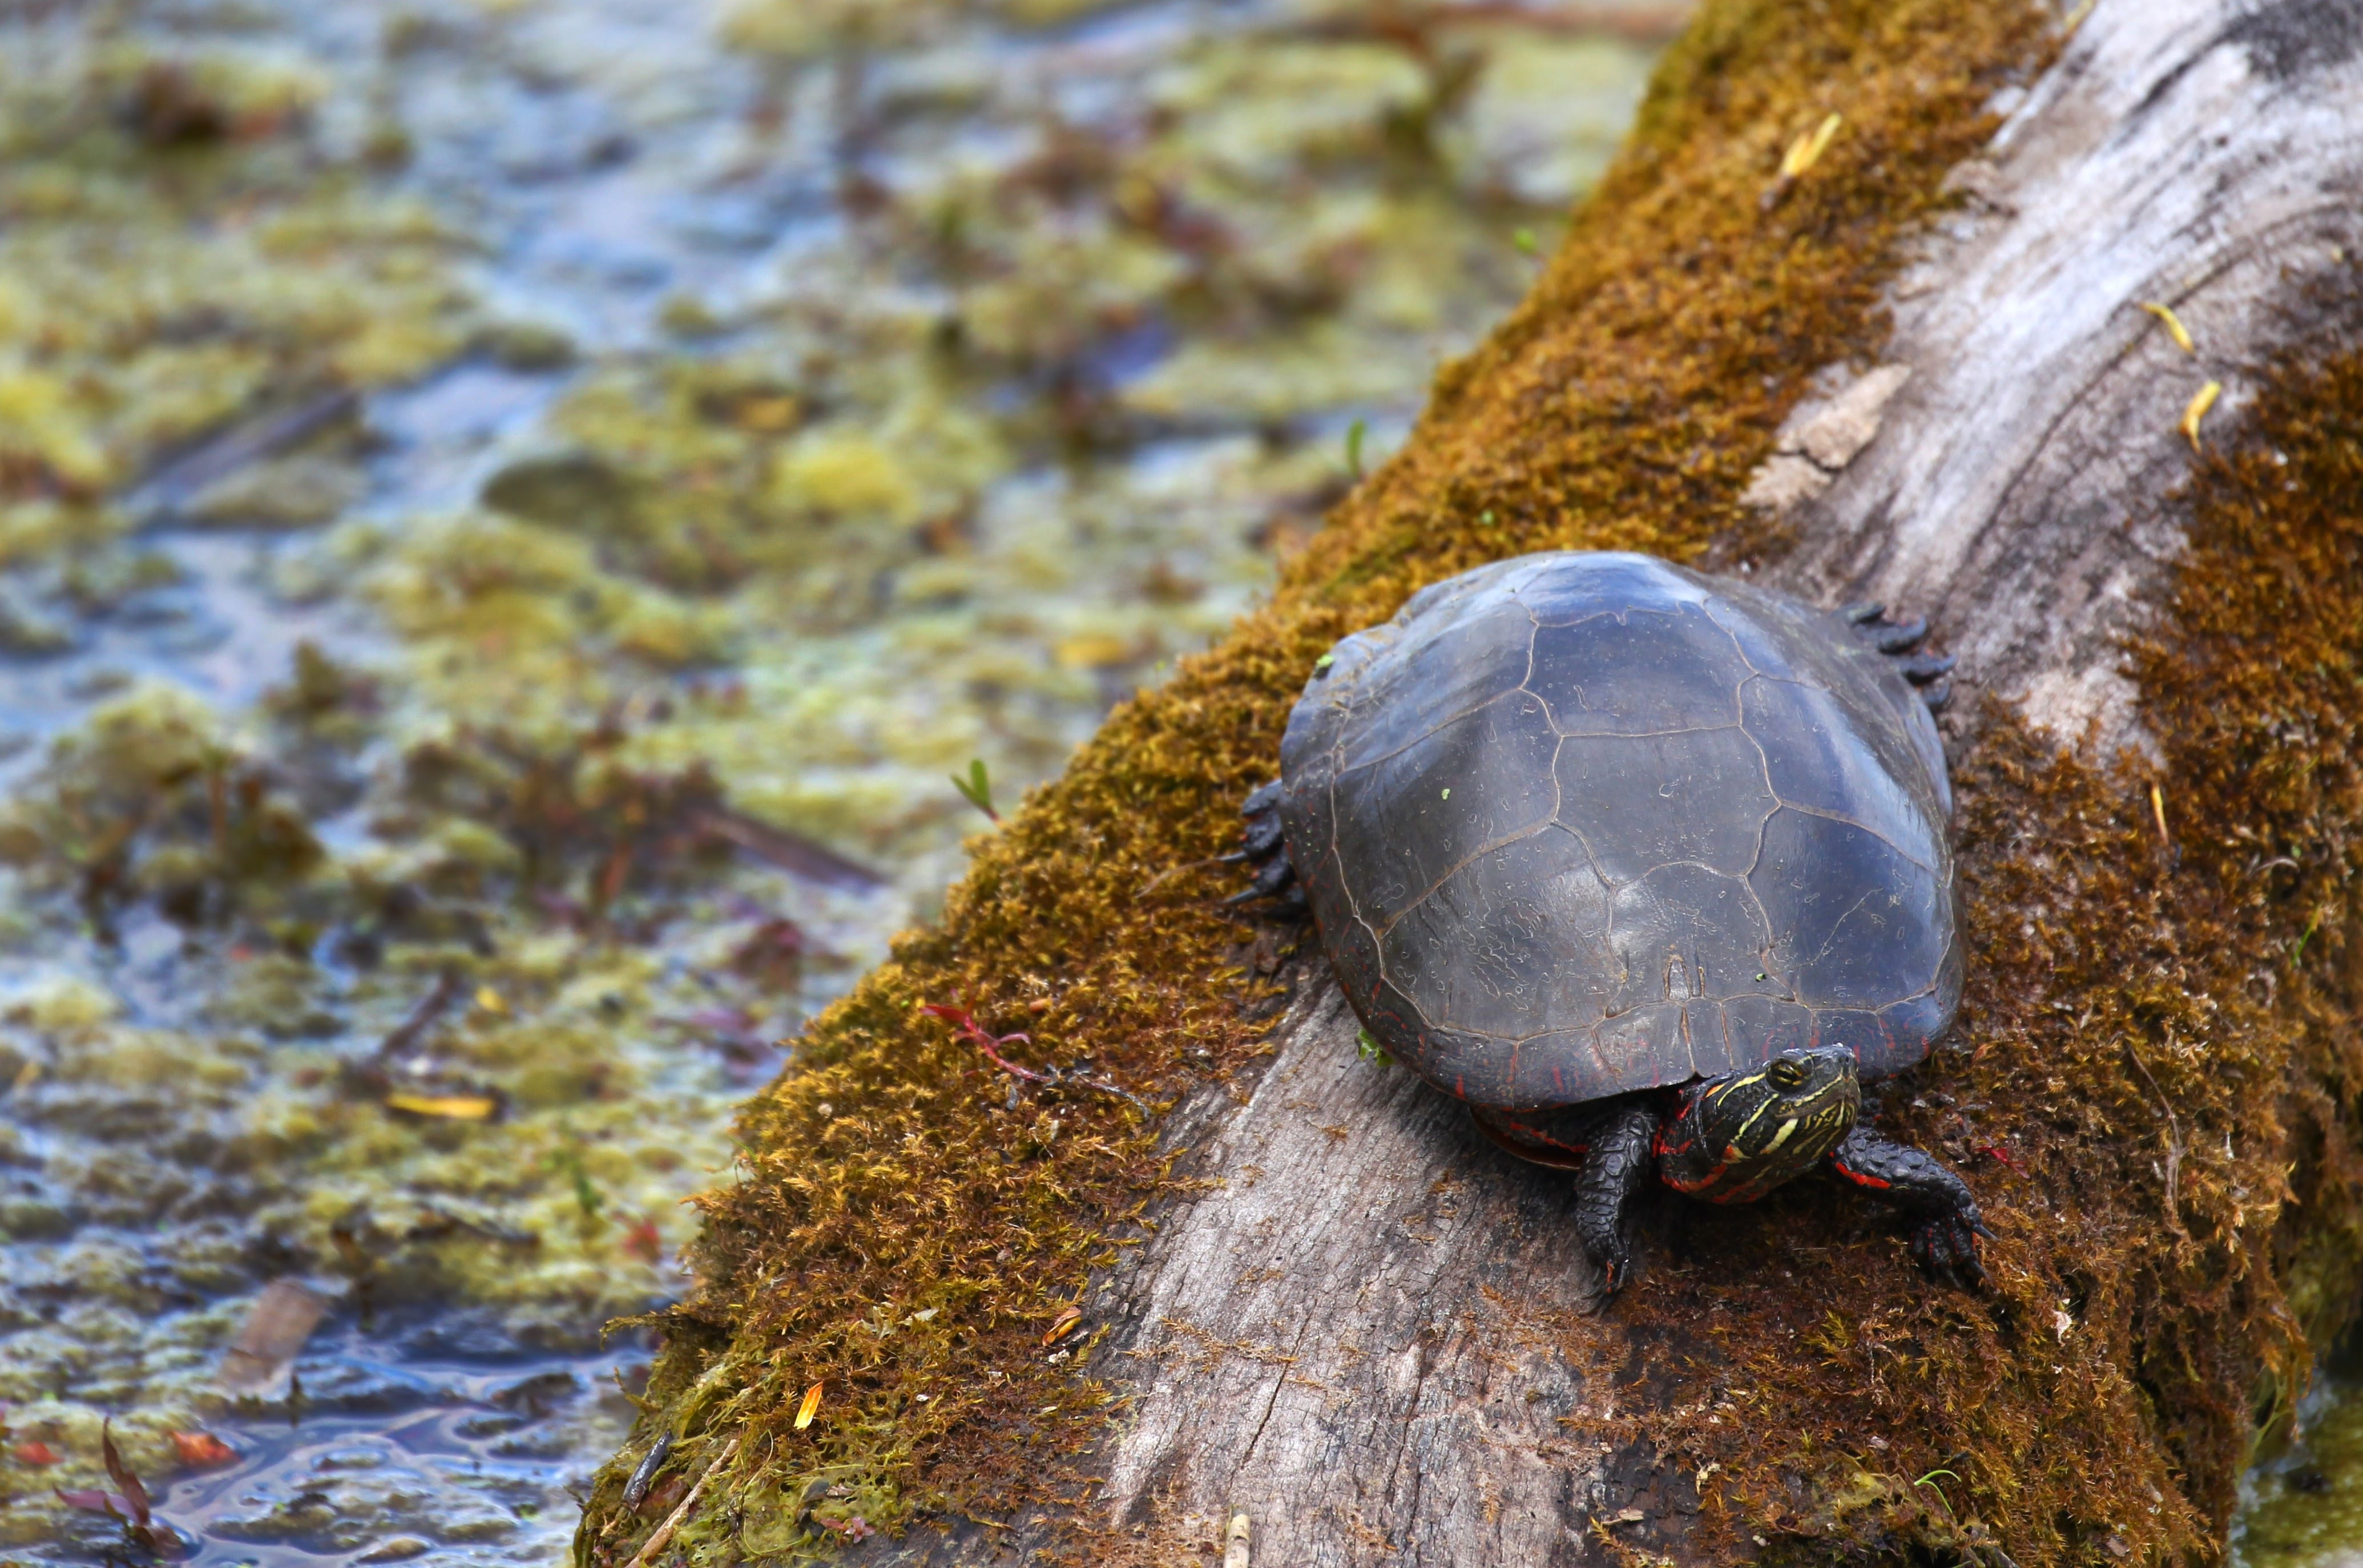 A turtle rests on a log at Tifft Nature Preserve.